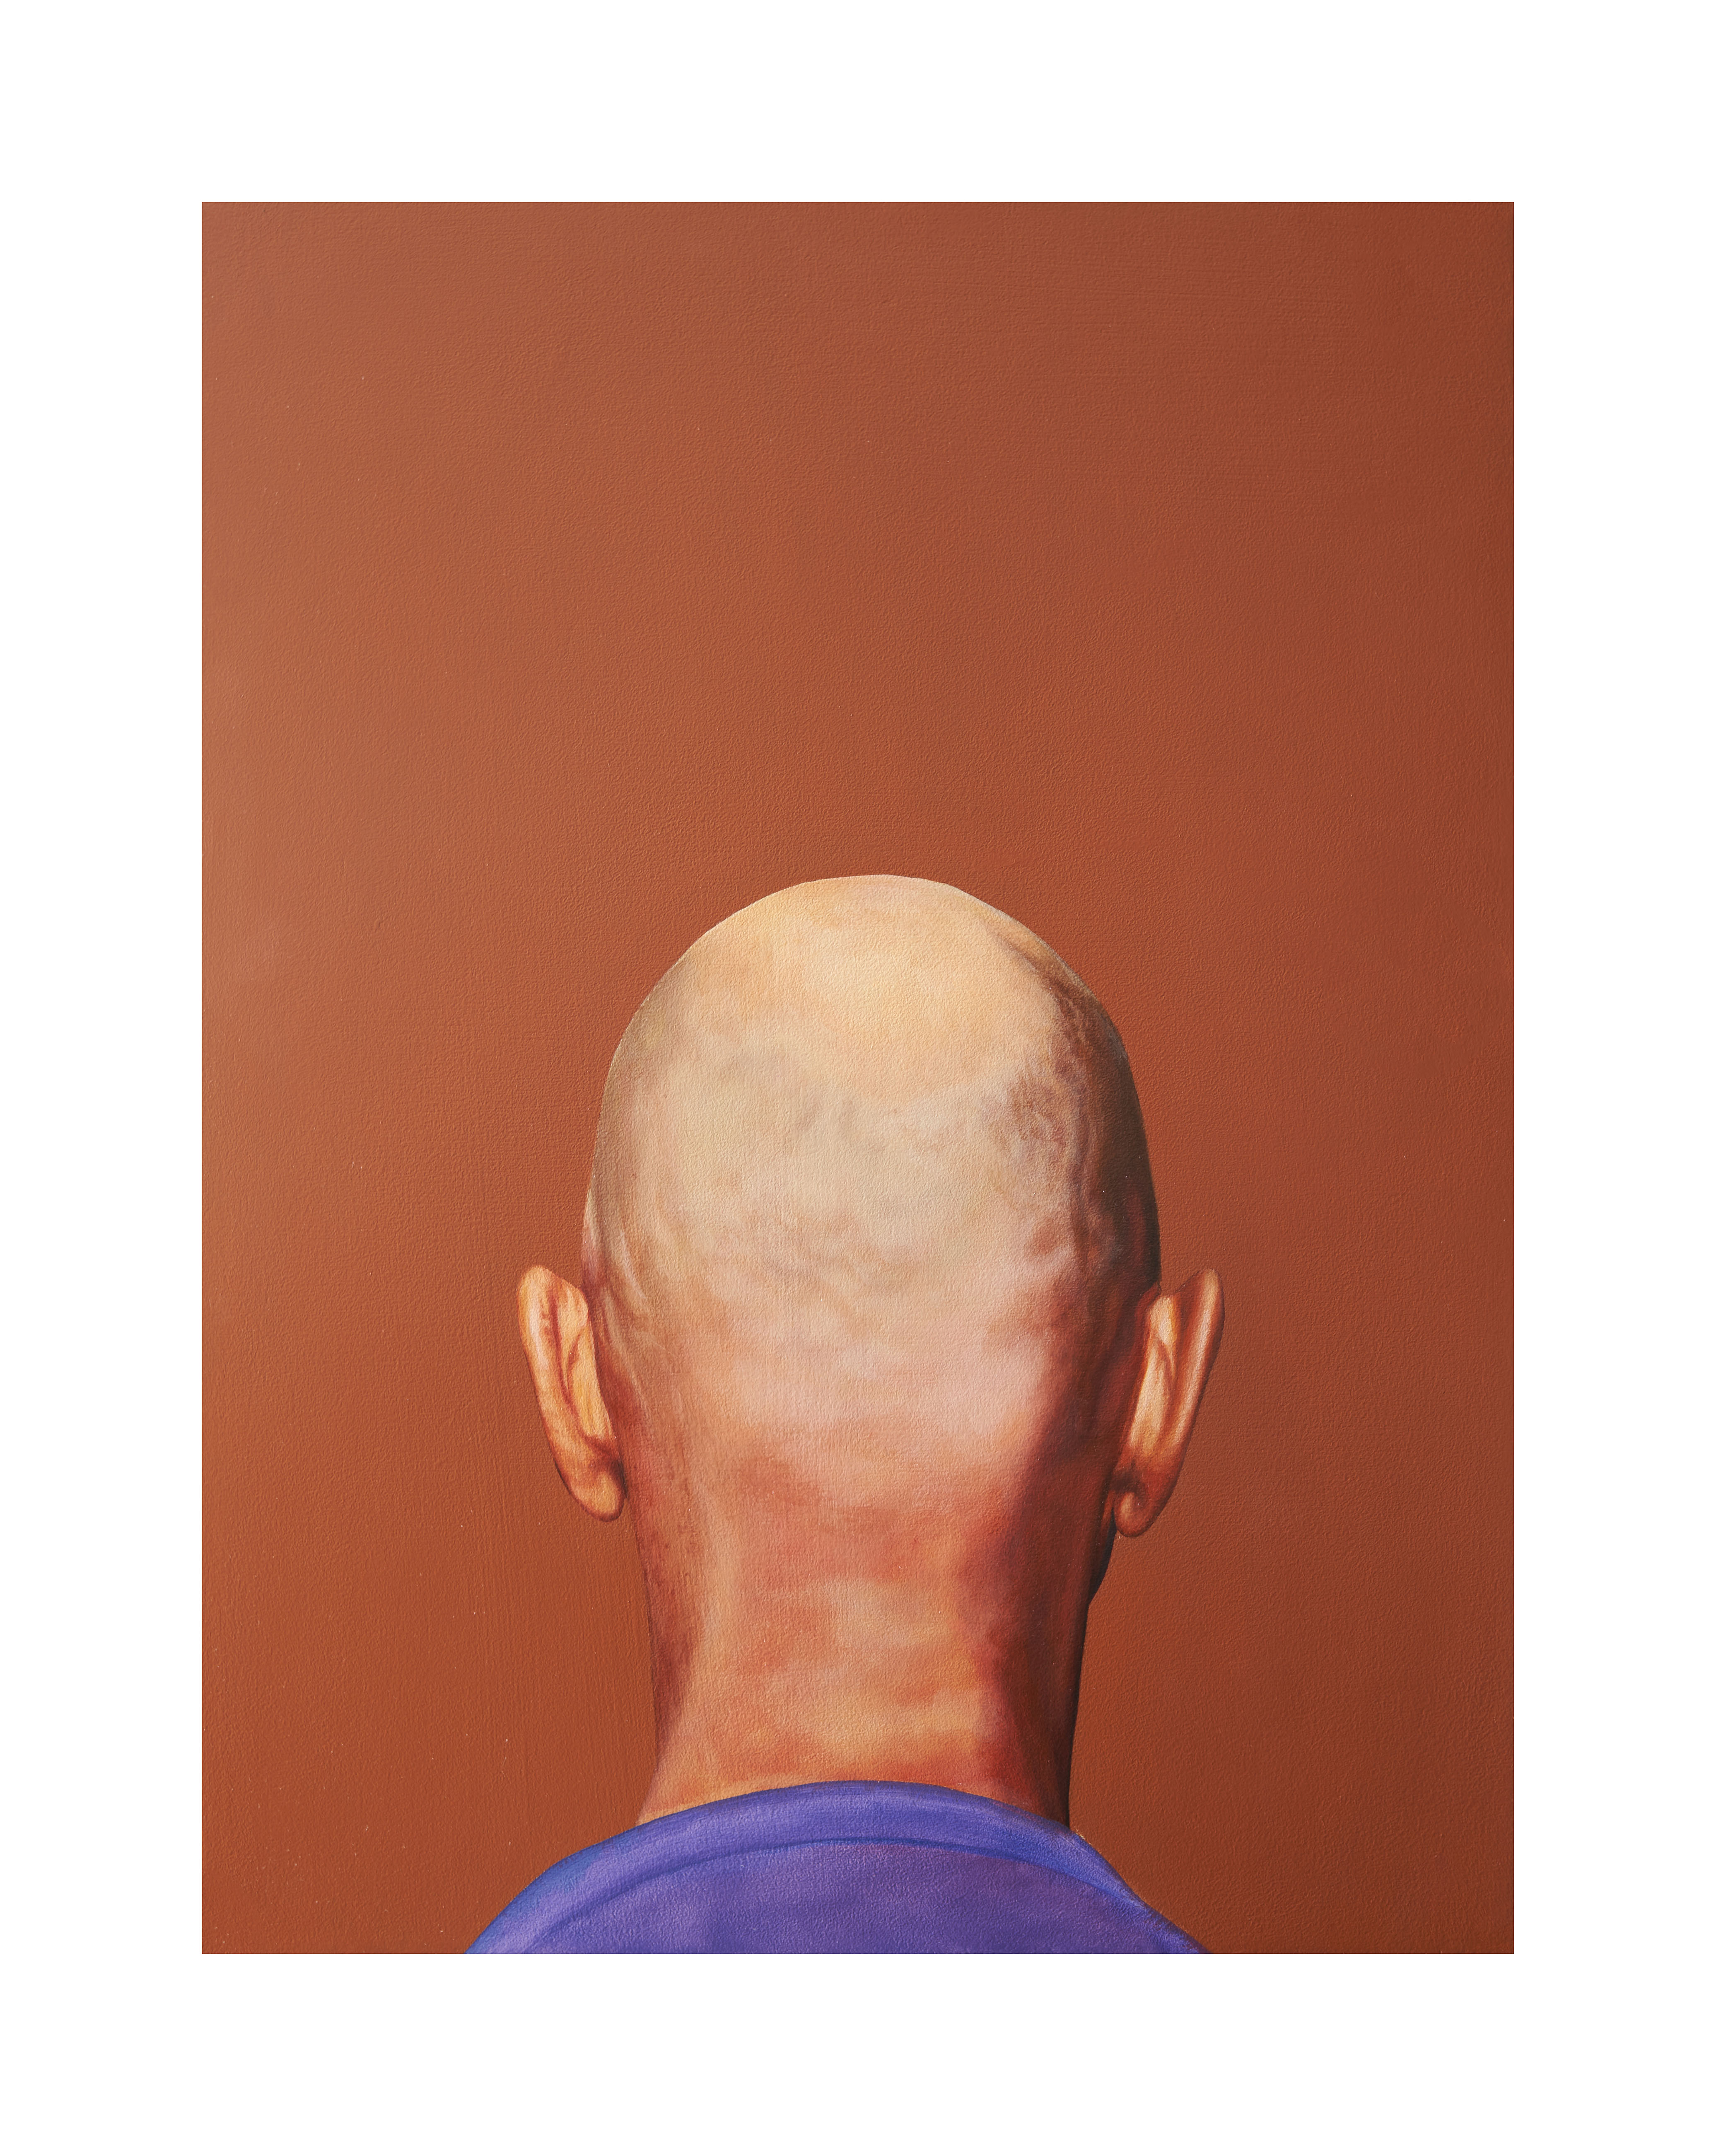 Head 1, Oil on Wood Panel, 24 x 18 x 2 inches, 2020